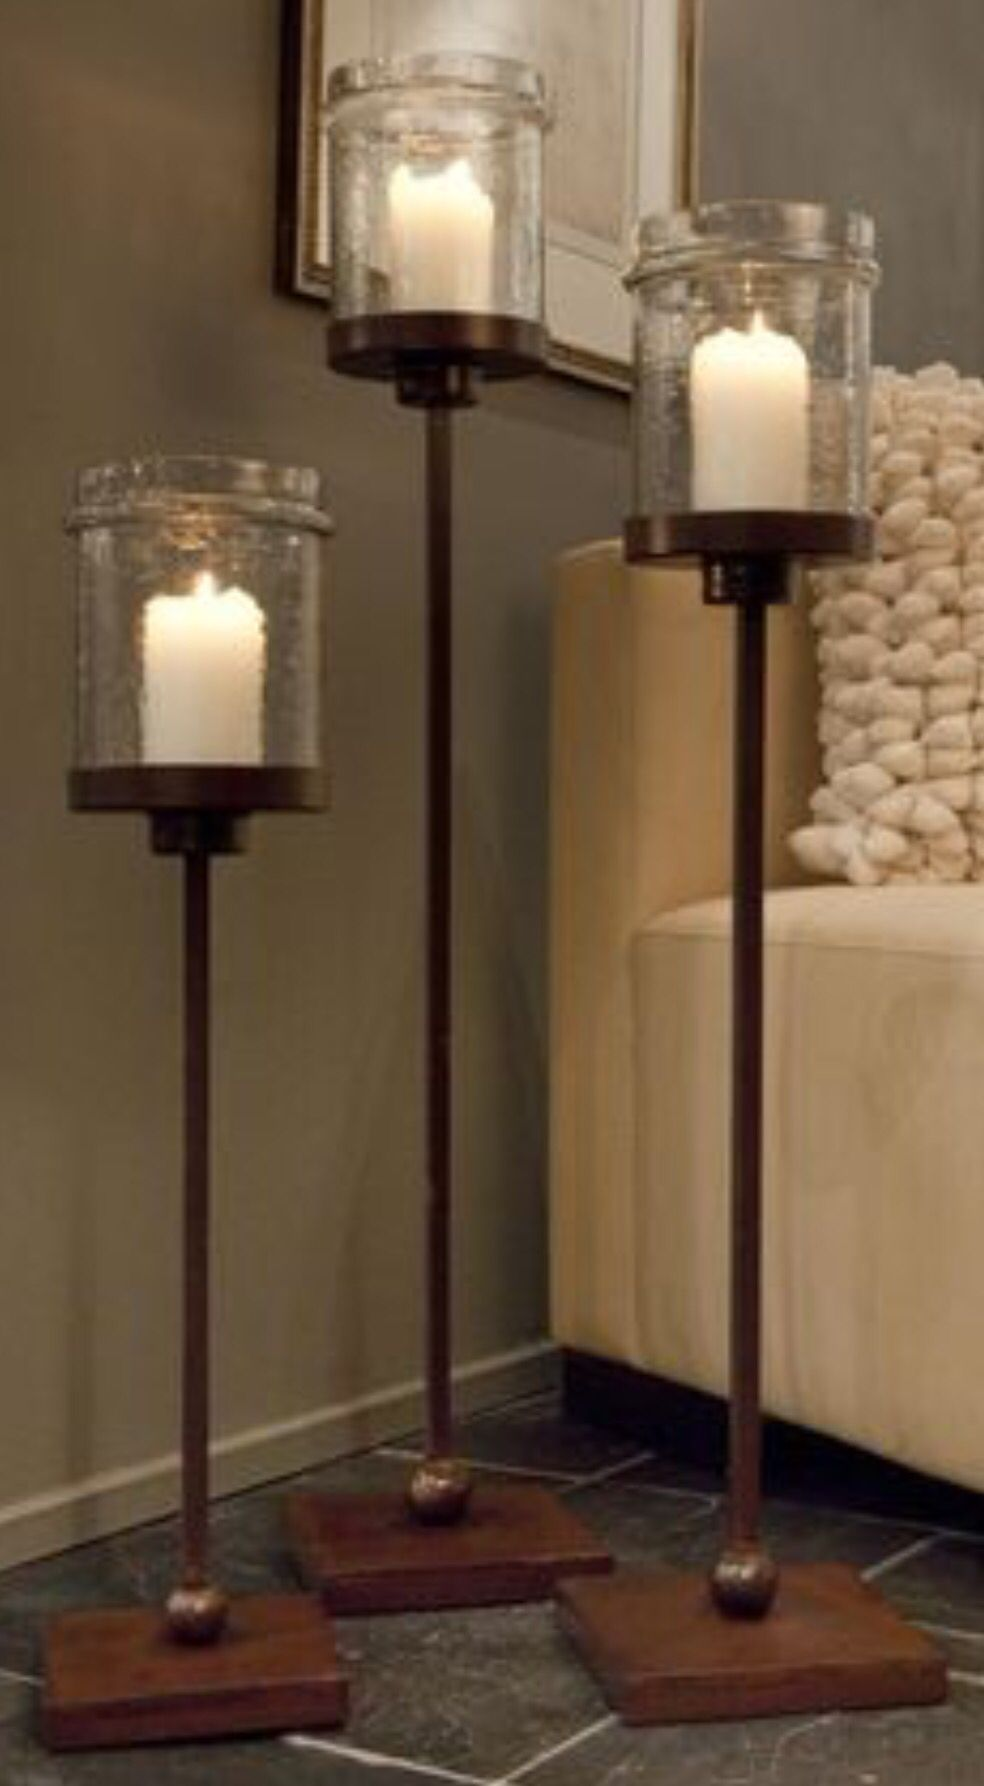 64a417d018a50 Wood Metal Glass Trio. Wood Metal Glass Trio Floor Candle Holders Tall ...